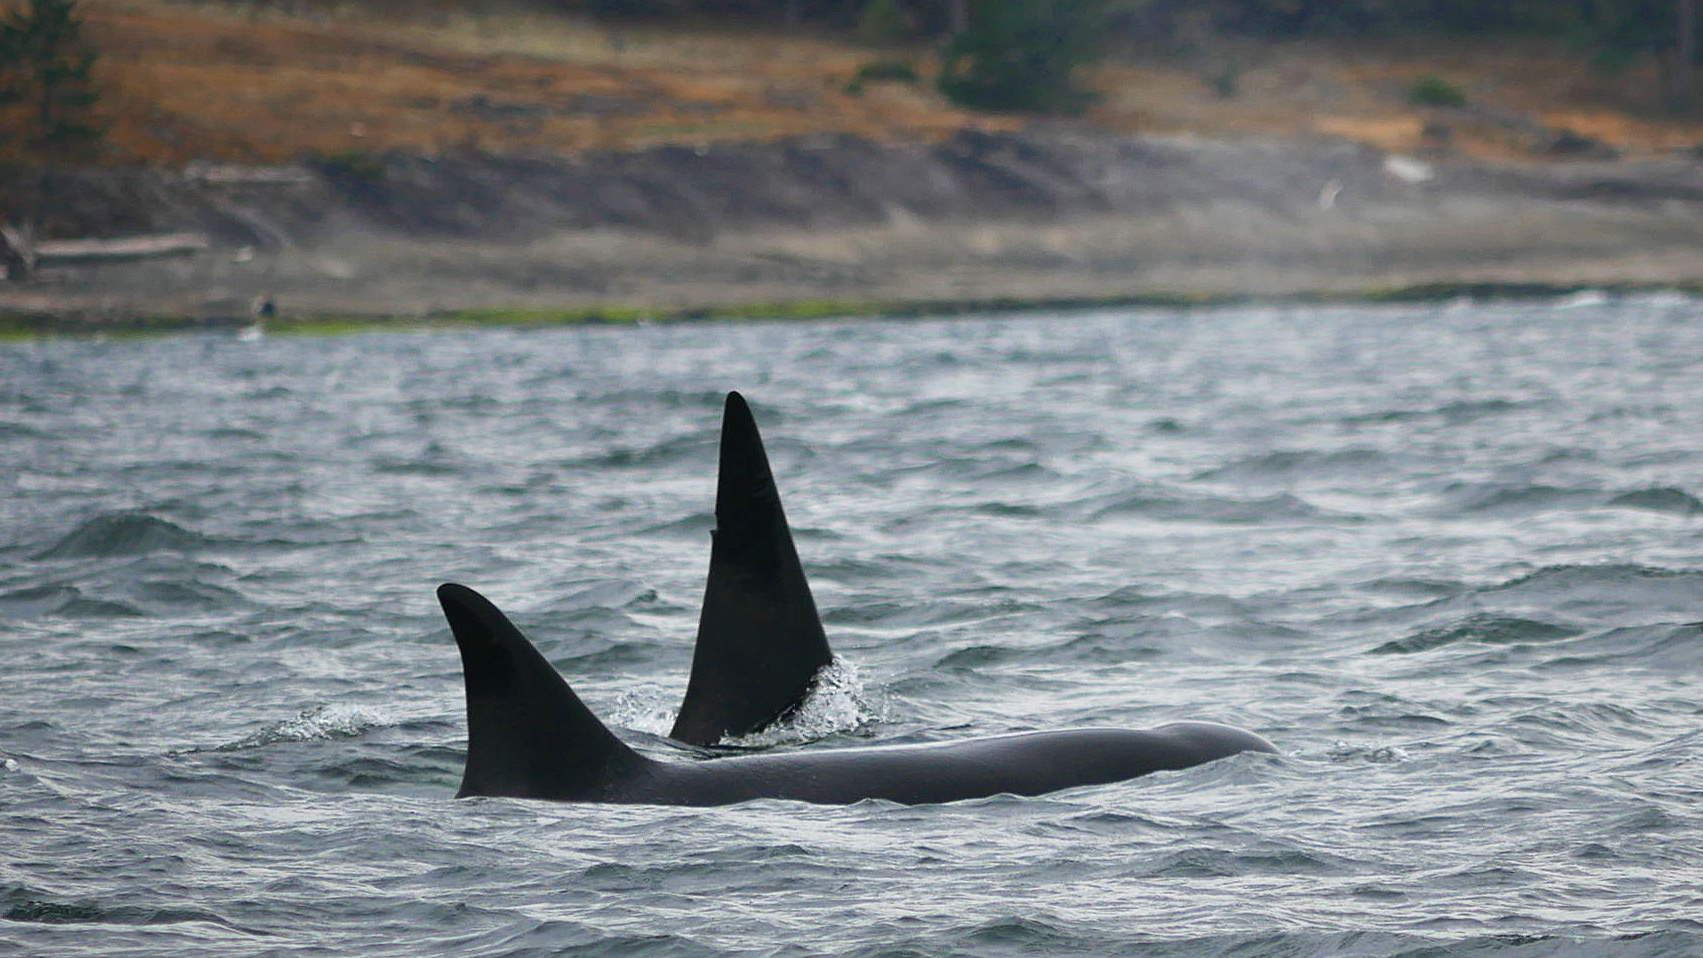 Copper has a pretty distinct notch in the top of his fin, can you see it? Photo by Val Watson